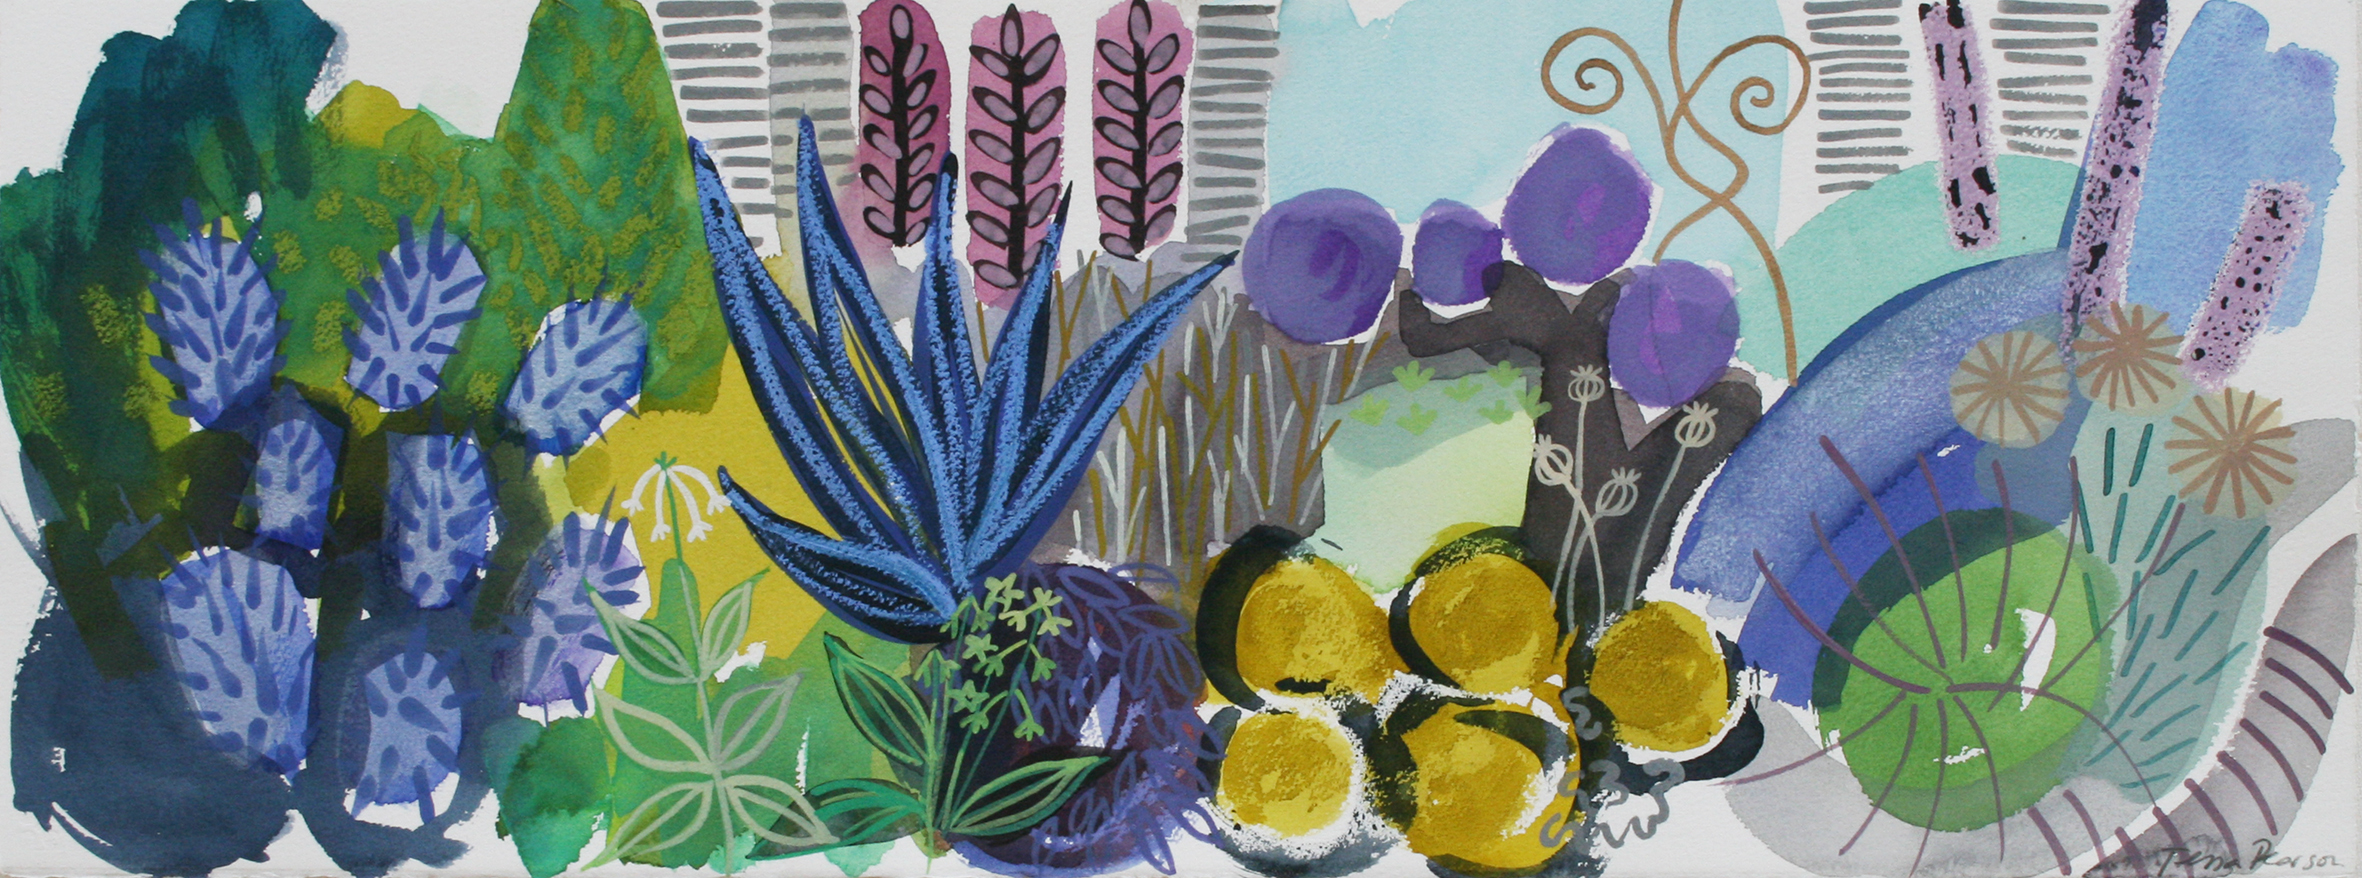 Sapphire Clematic Tower Border by Tessa Pearson, Watercolour